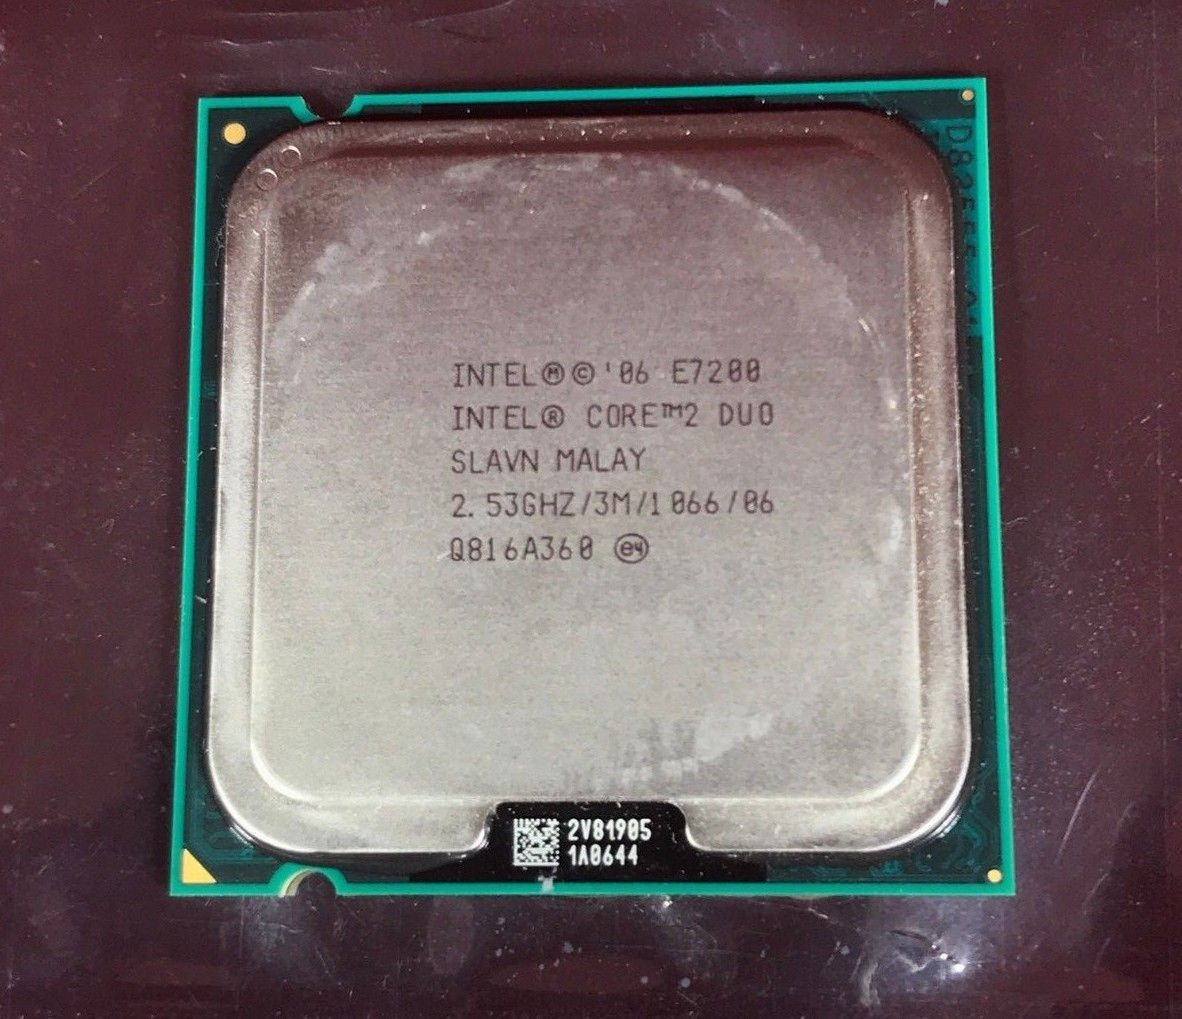 Intel Core 2 Duo - E7200 - 2.53GHz / 3M / 1066 / 20'06 - Desktop Computer CPU